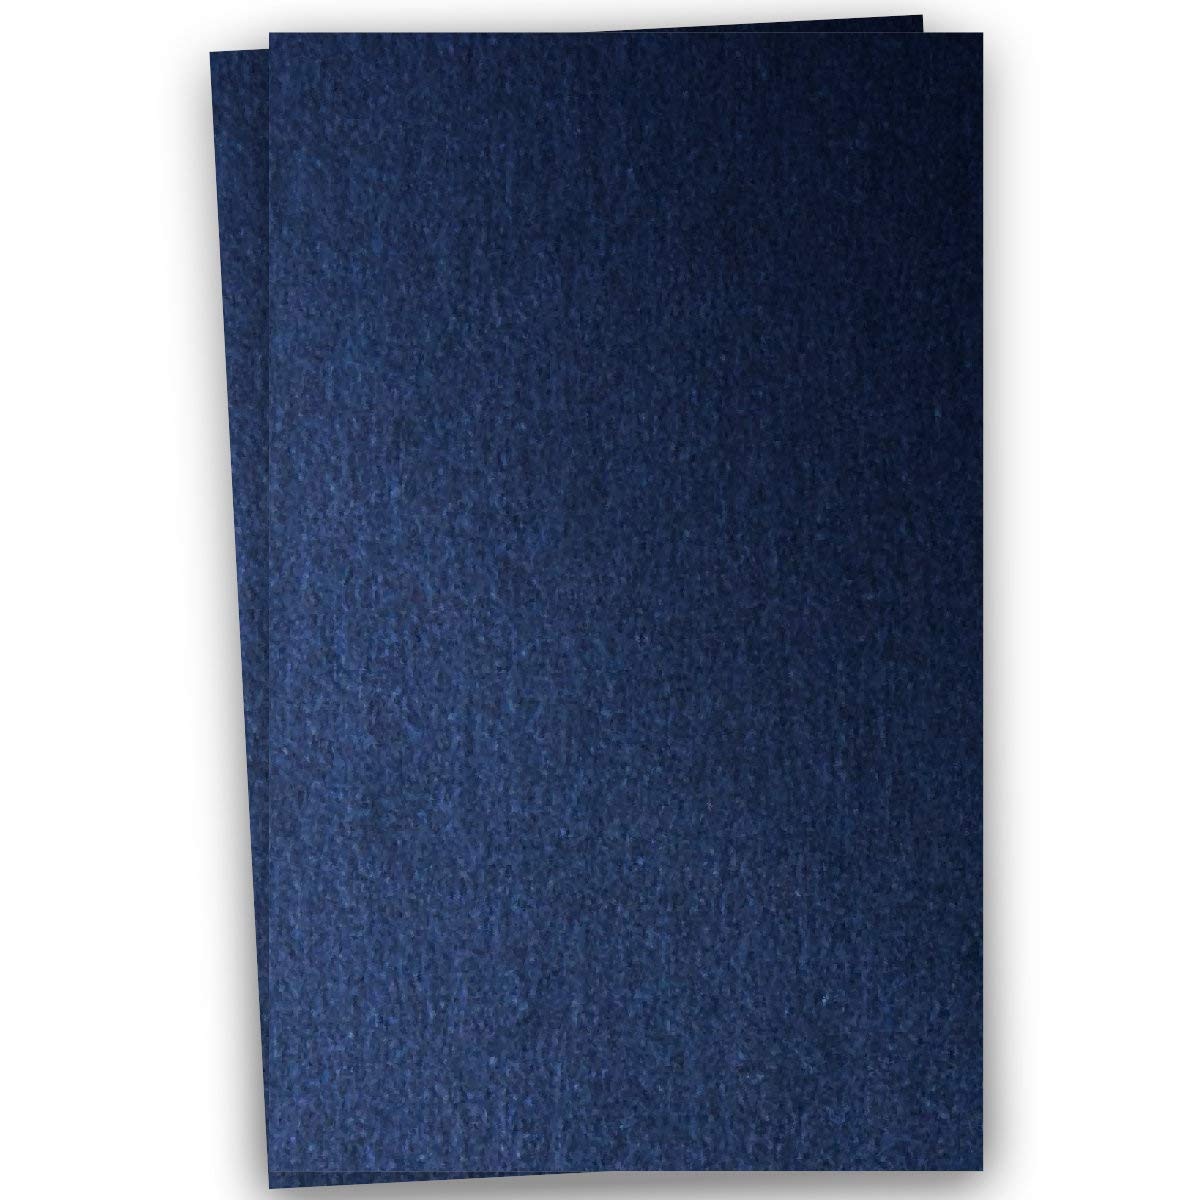 Metallic Dark Blue Lapis 12-x-18 Cardstock Paper 100-pk - PaperPapers 284 GSM (105lb Cover) Large size Metallic Card Stock Paper - Business, Card Making, Designers, Professional and DIY Projects